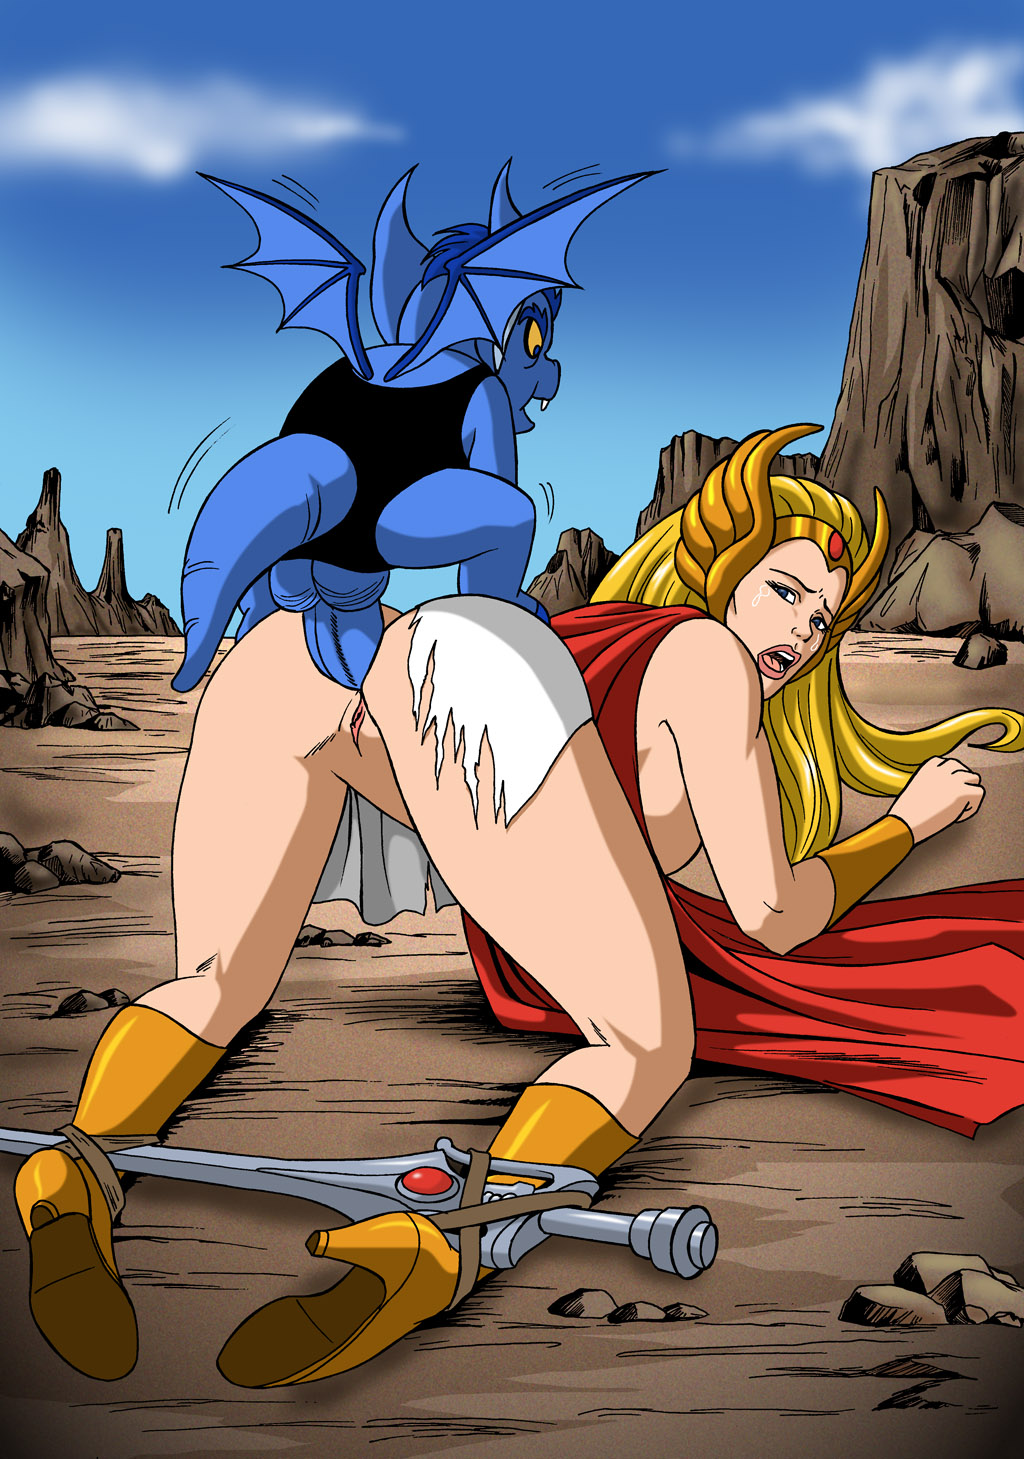 Fame cartoon porno xxx realistic women